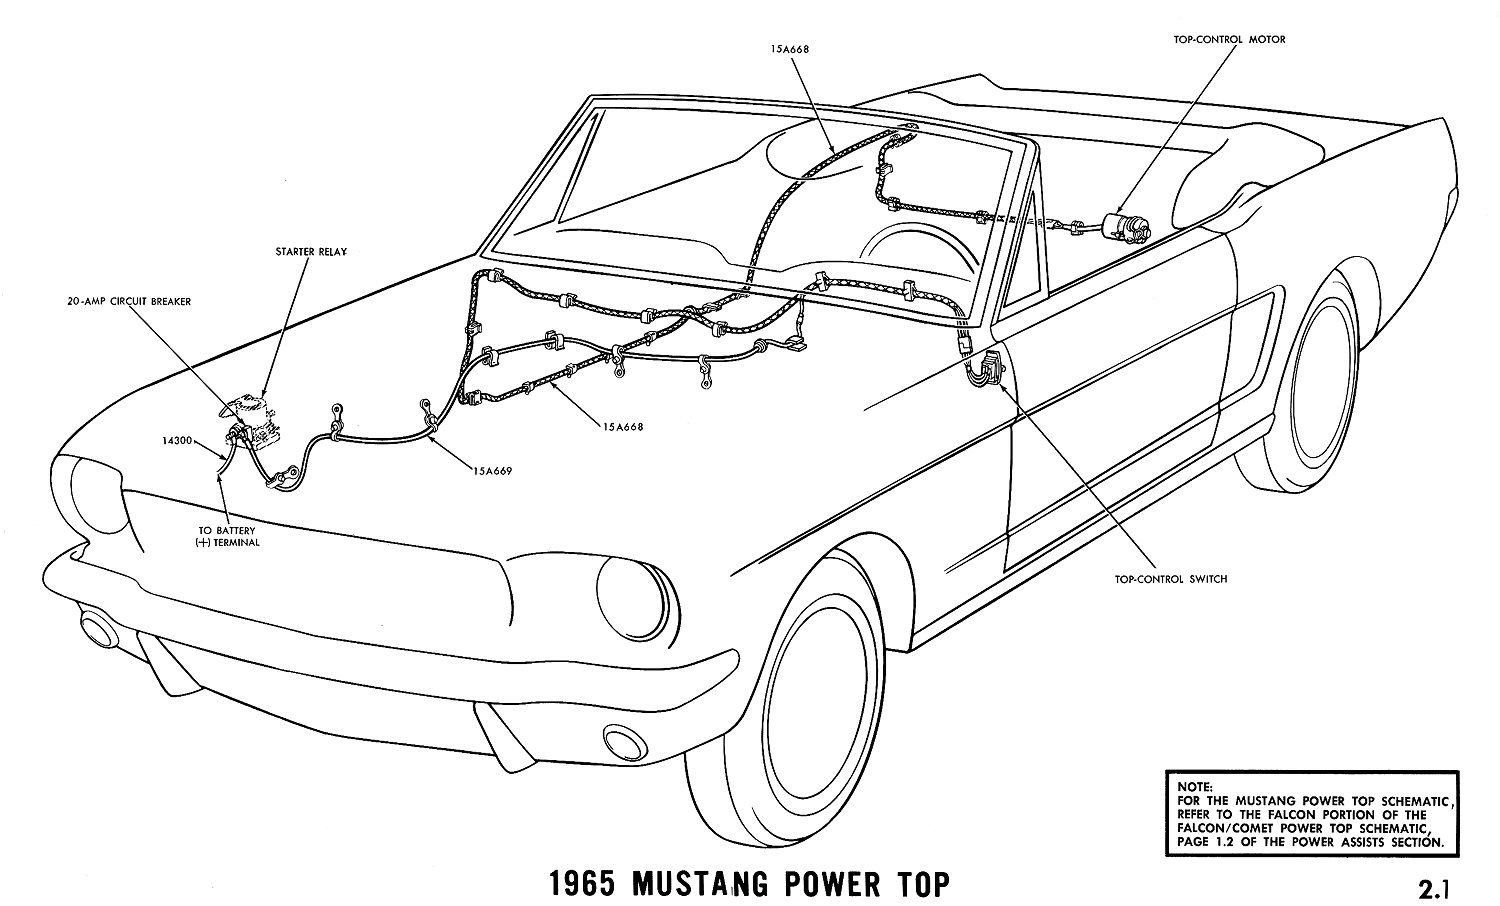 1965 Mustang Starter Solenoid Wiring On 65 Mustang Solenoid Wiring on 91 acura integra wiring diagram, 91 dodge truck wiring diagram, 91 dodge caravan wiring diagram, 91 toyota pickup wiring diagram, 91 gmc sonoma wiring diagram, 91 honda civic hatchback wiring diagram, 91 jeep yj wiring diagram, 91 geo tracker wiring diagram, 91 dodge stealth wiring diagram, 91 dodge dakota wiring diagram, 91 jeep wrangler wiring diagram,